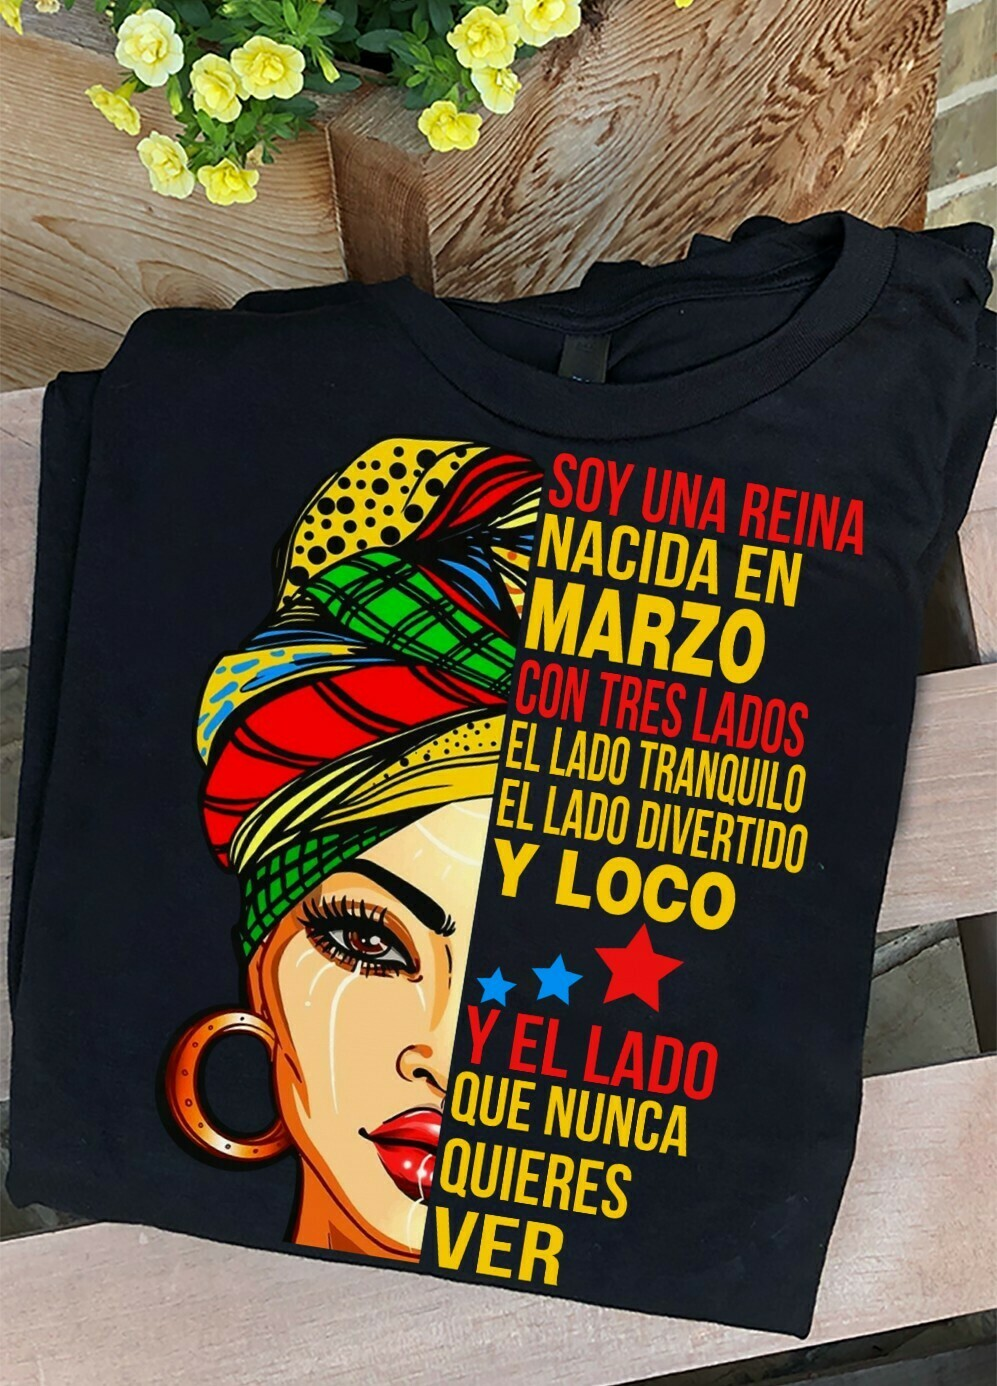 I'm a March Queen I Have 3 Sides The Quite Sweet Crazy women,Soy una reina nacida en agosto con tres lados el lado tranquilo T-shirt T-Shirt Hoodie Sweatshirt Sweater Tee Kids Youth Gifts Jolly Family